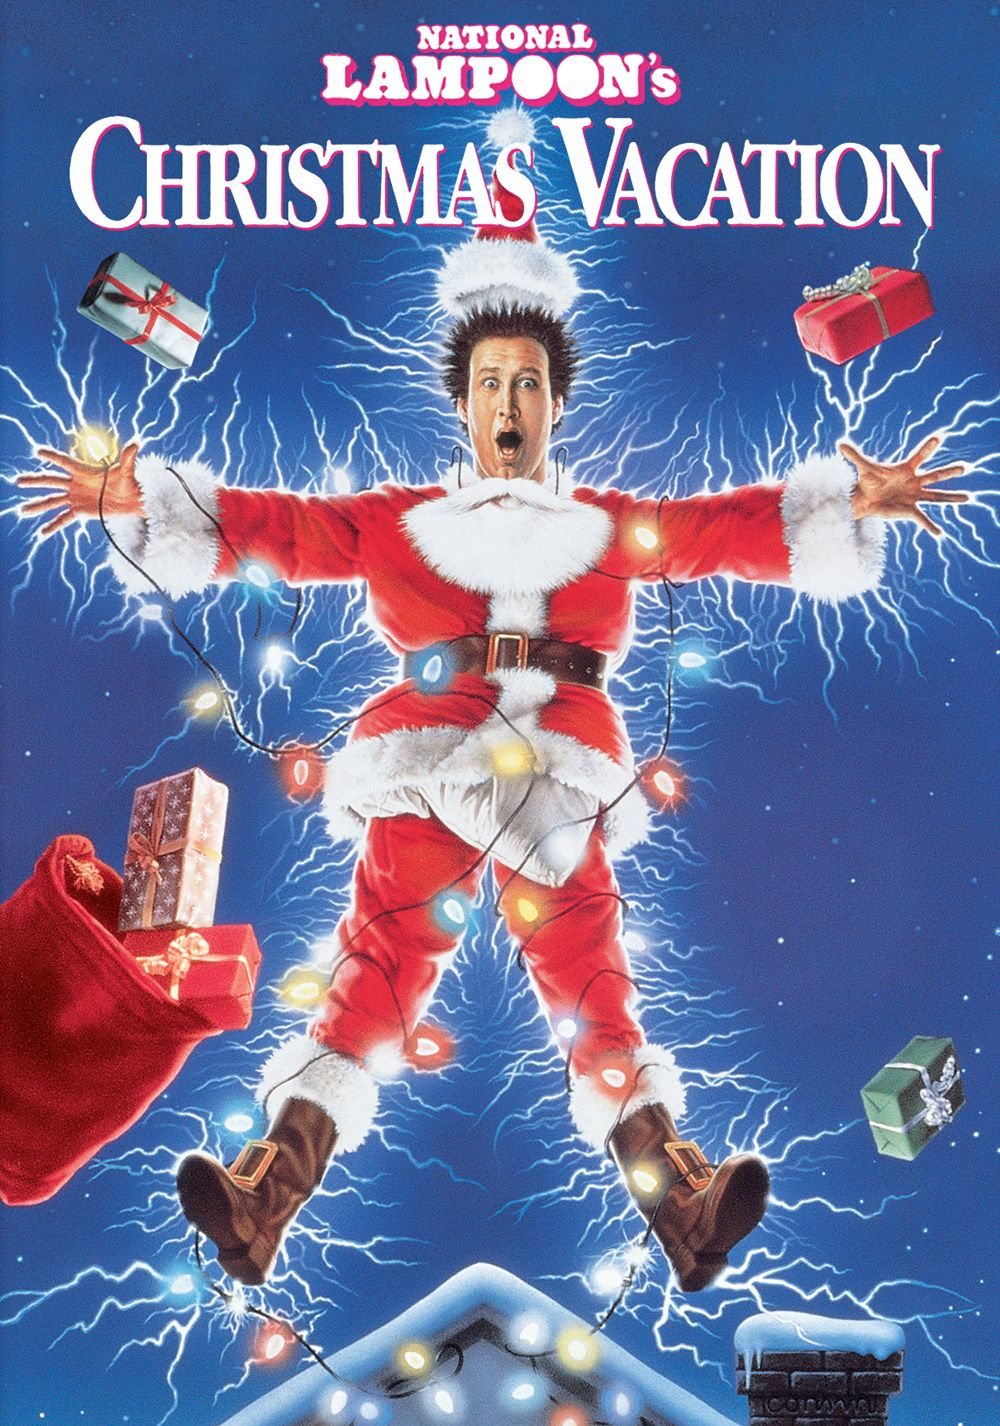 Iphone Wallpapers National Lampoons Christmas Vacation Wallpaper For Iphone